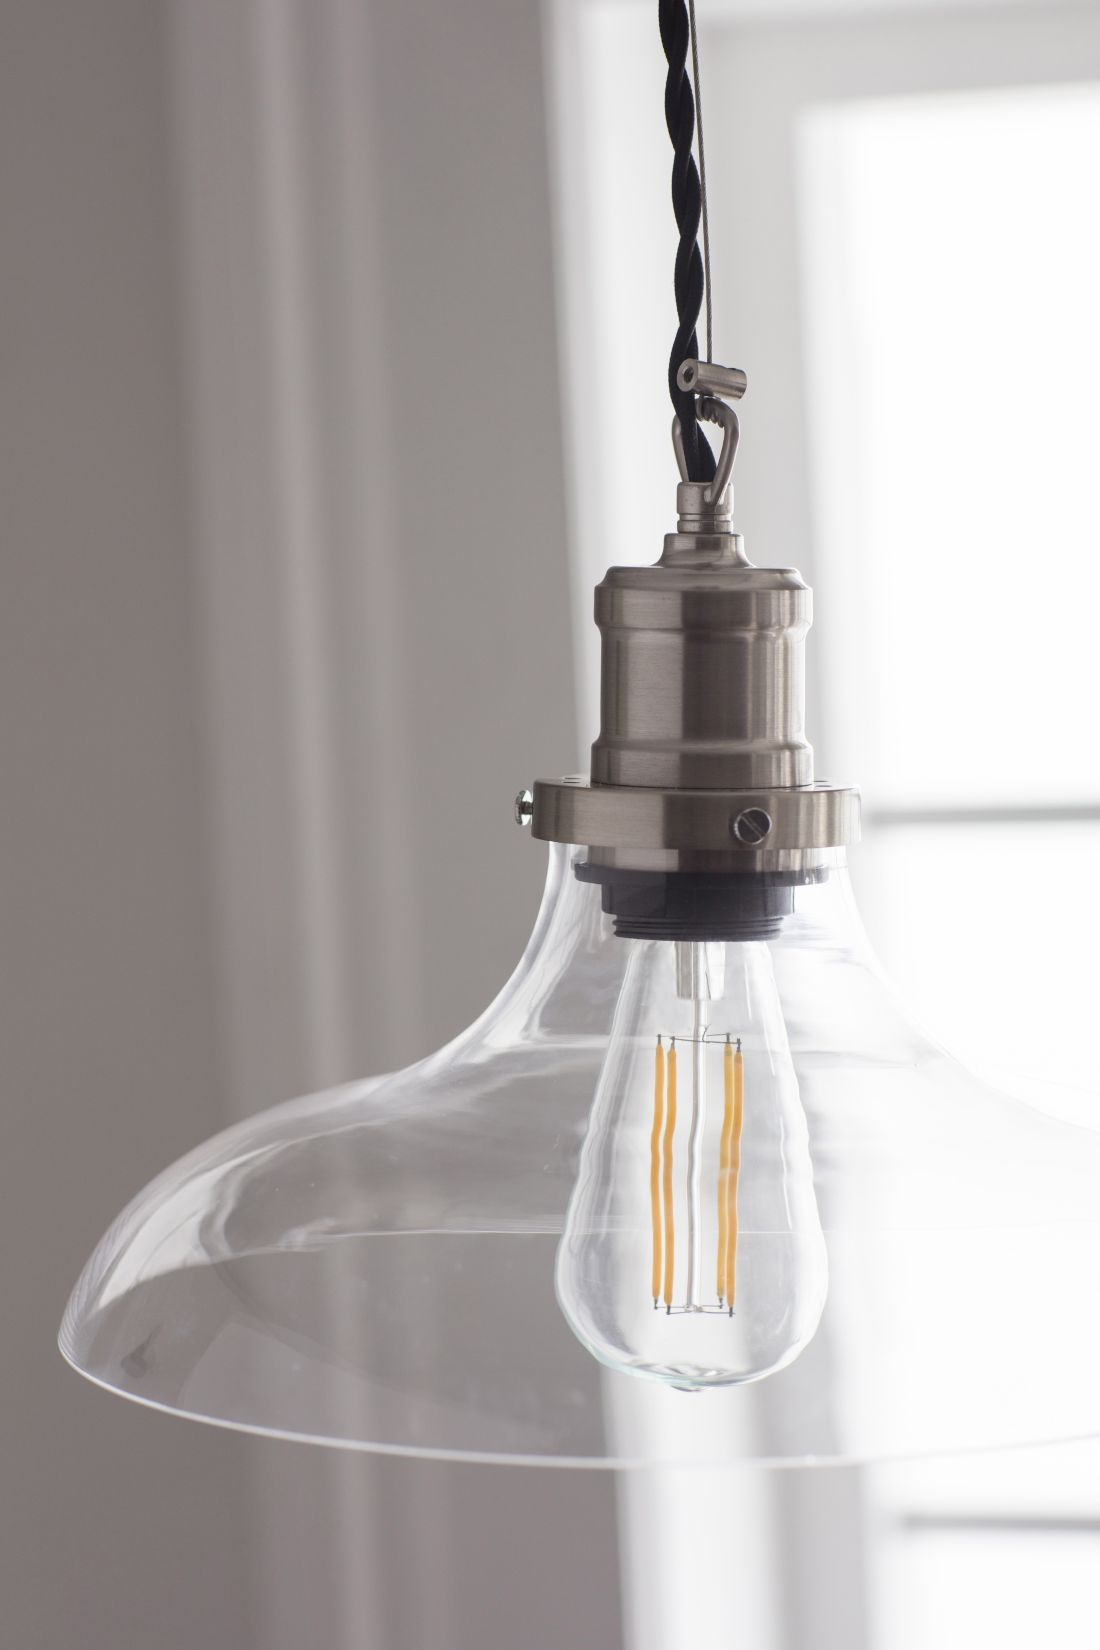 8garden-trading-hoxton-pendant-light-large-in-satin-nickel-close-up.jpg